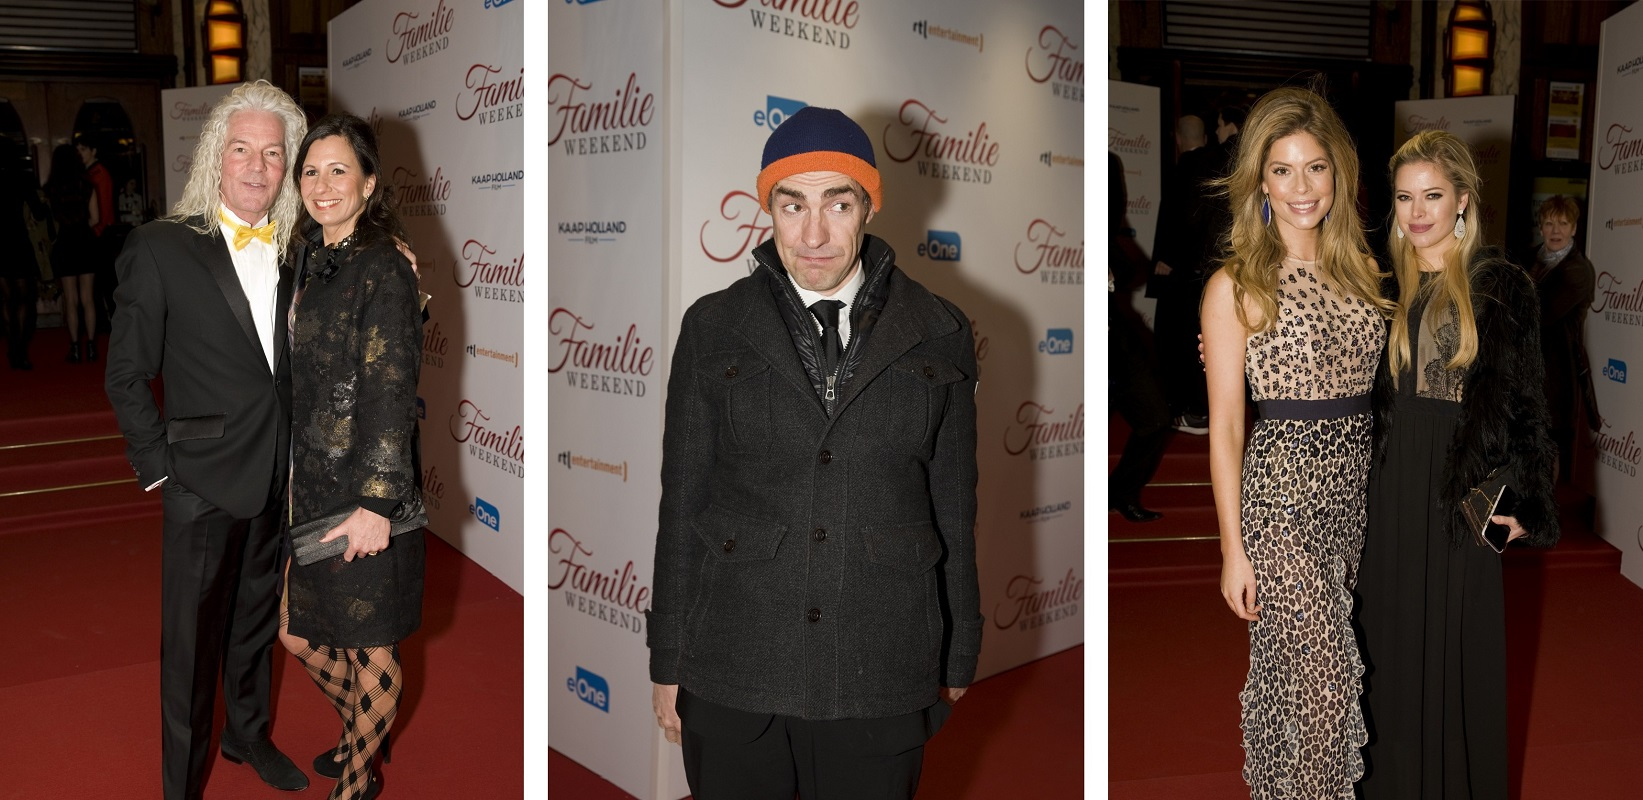 Premiere Familieweekend Glamourland (4)